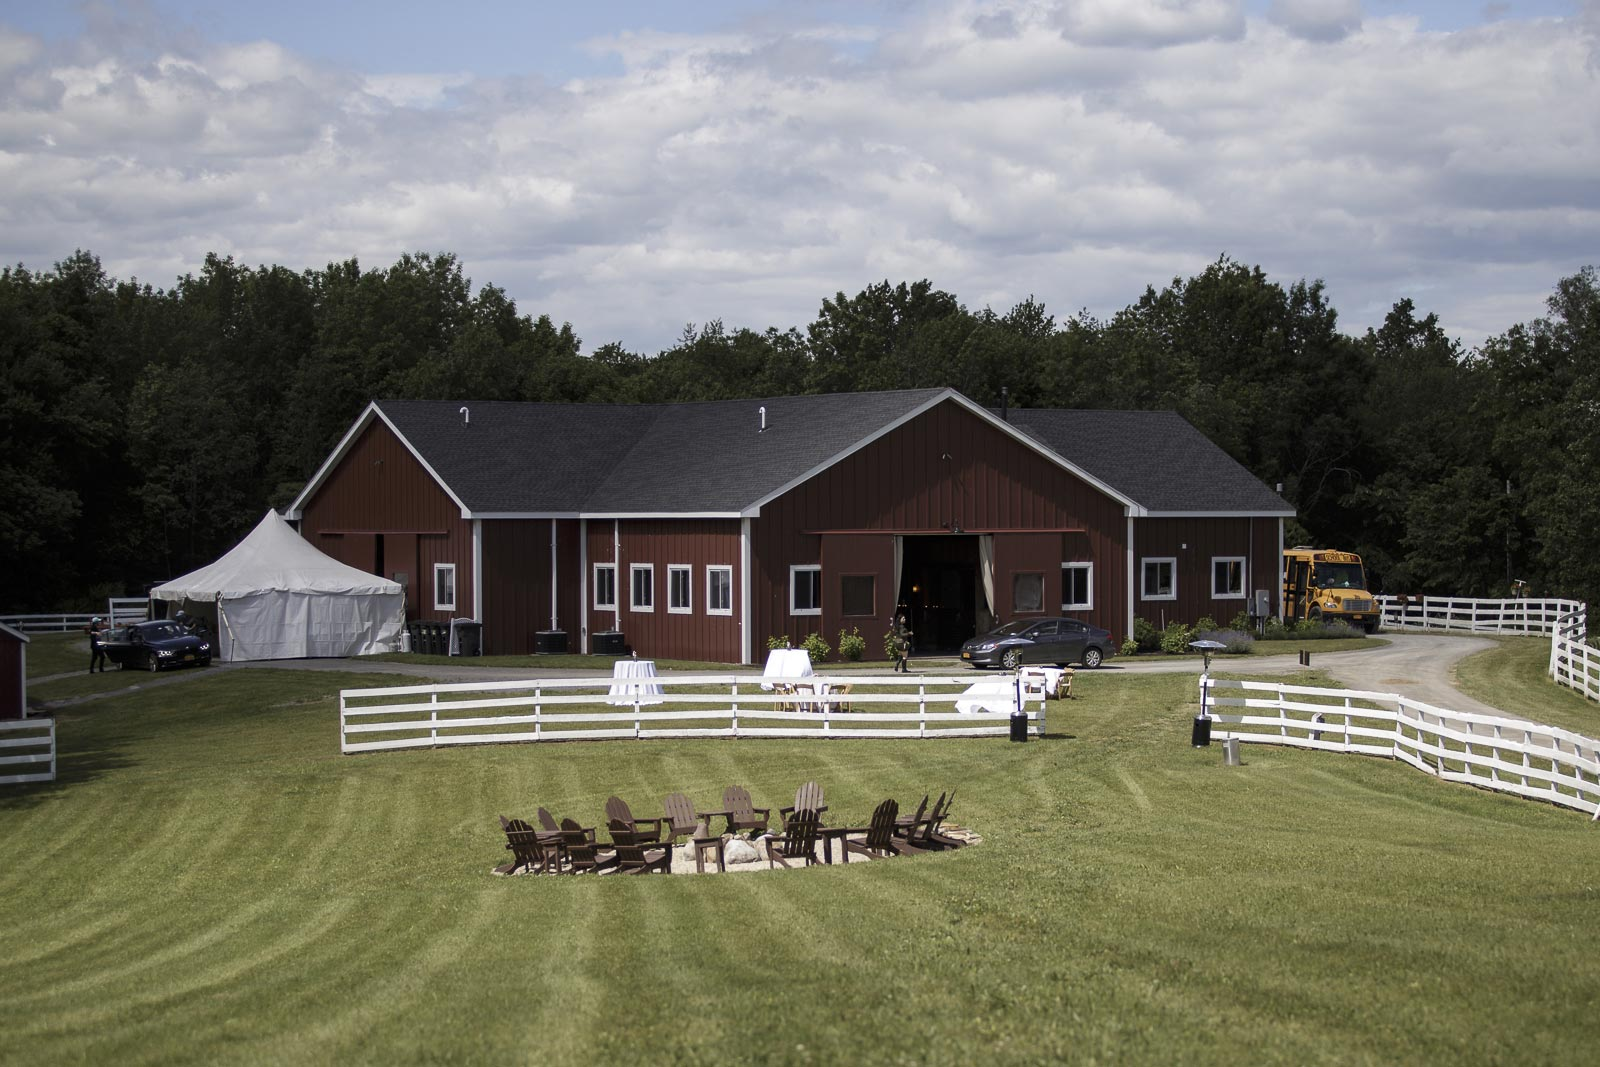 barn-at-liberty-farms-wedding-hudson-valley-alekseyk-photography-2.jpg